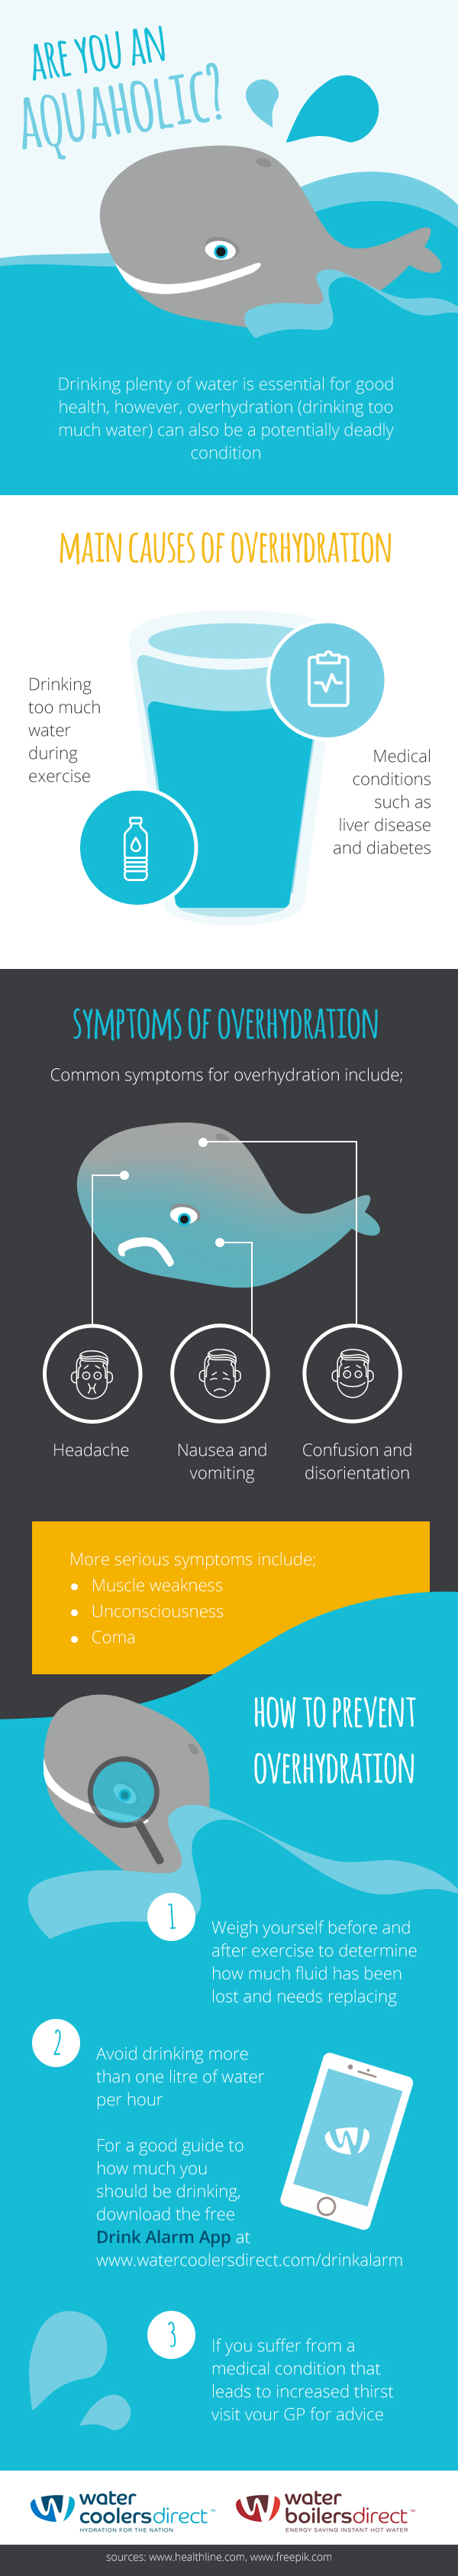 Overhydration Symptoms And Prevention  Water Boilers. New York Hair Transplant Cost. Southwest University Online Track It Online. Debt Settlement Company Kia Dealers In Arizona. International Product Supply. Schools That Offer Occupational Therapy Assistant Programs. Jeep Dealer In Los Angeles Crown Front Teeth. Best Movie Stream Sites Lsu School Of Nursing. Security Companies Atlanta Ga